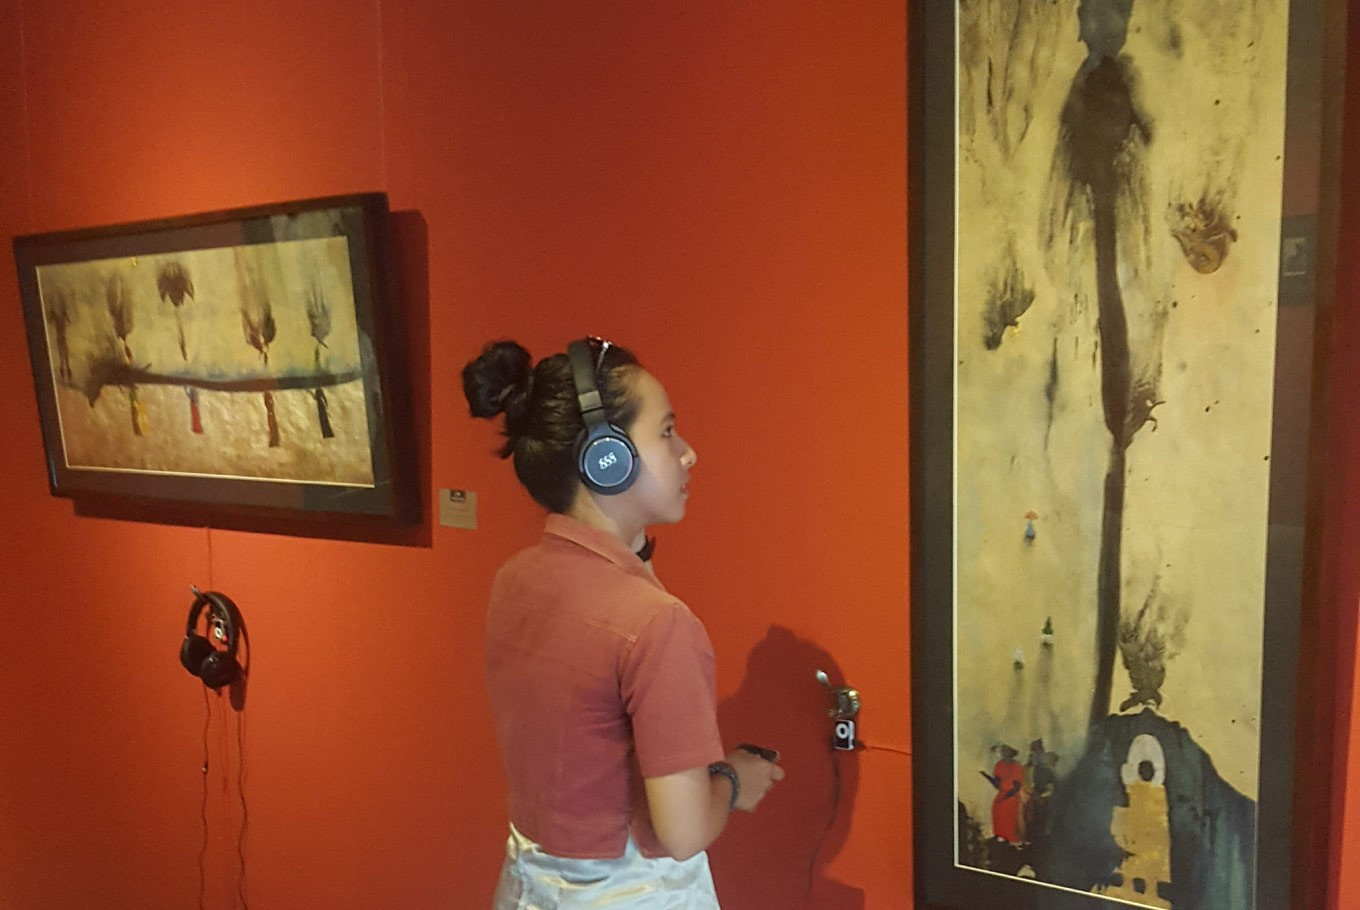 A visitor to the exhibition engages with Amin Taasha's work while listening to an audio composition by Vanja Dabic.